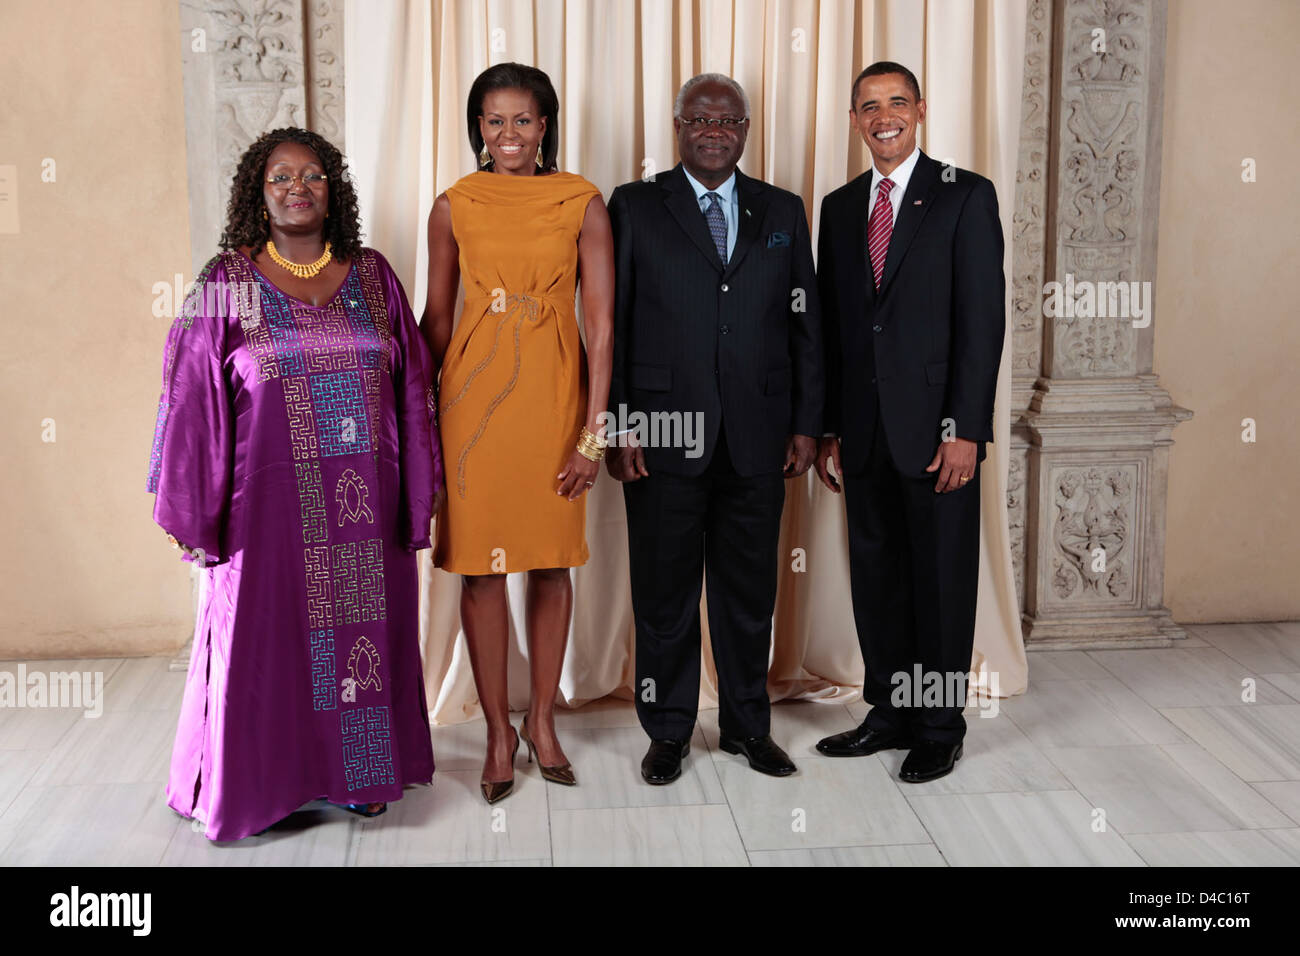 U.S. President Barack Obama and First Lady Michelle Obama With World Leaders at the Metropolitan Museum in New York - Stock Image